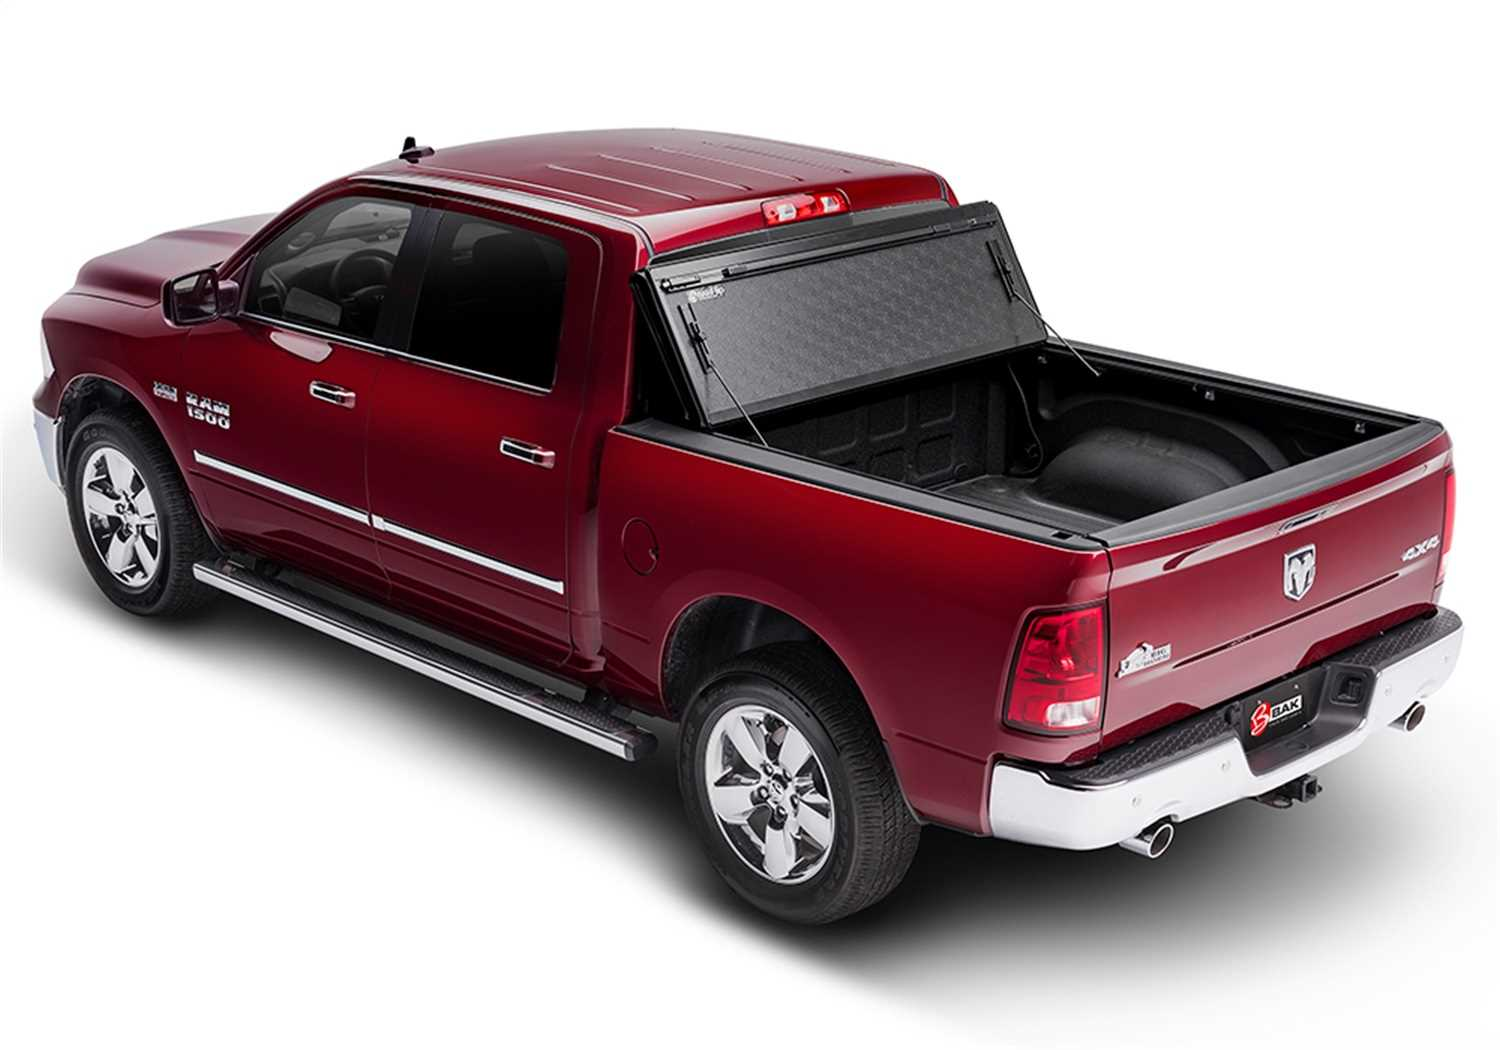 772504 Bak Industries BAKFlip F1 Hard Folding Truck Bed Cover